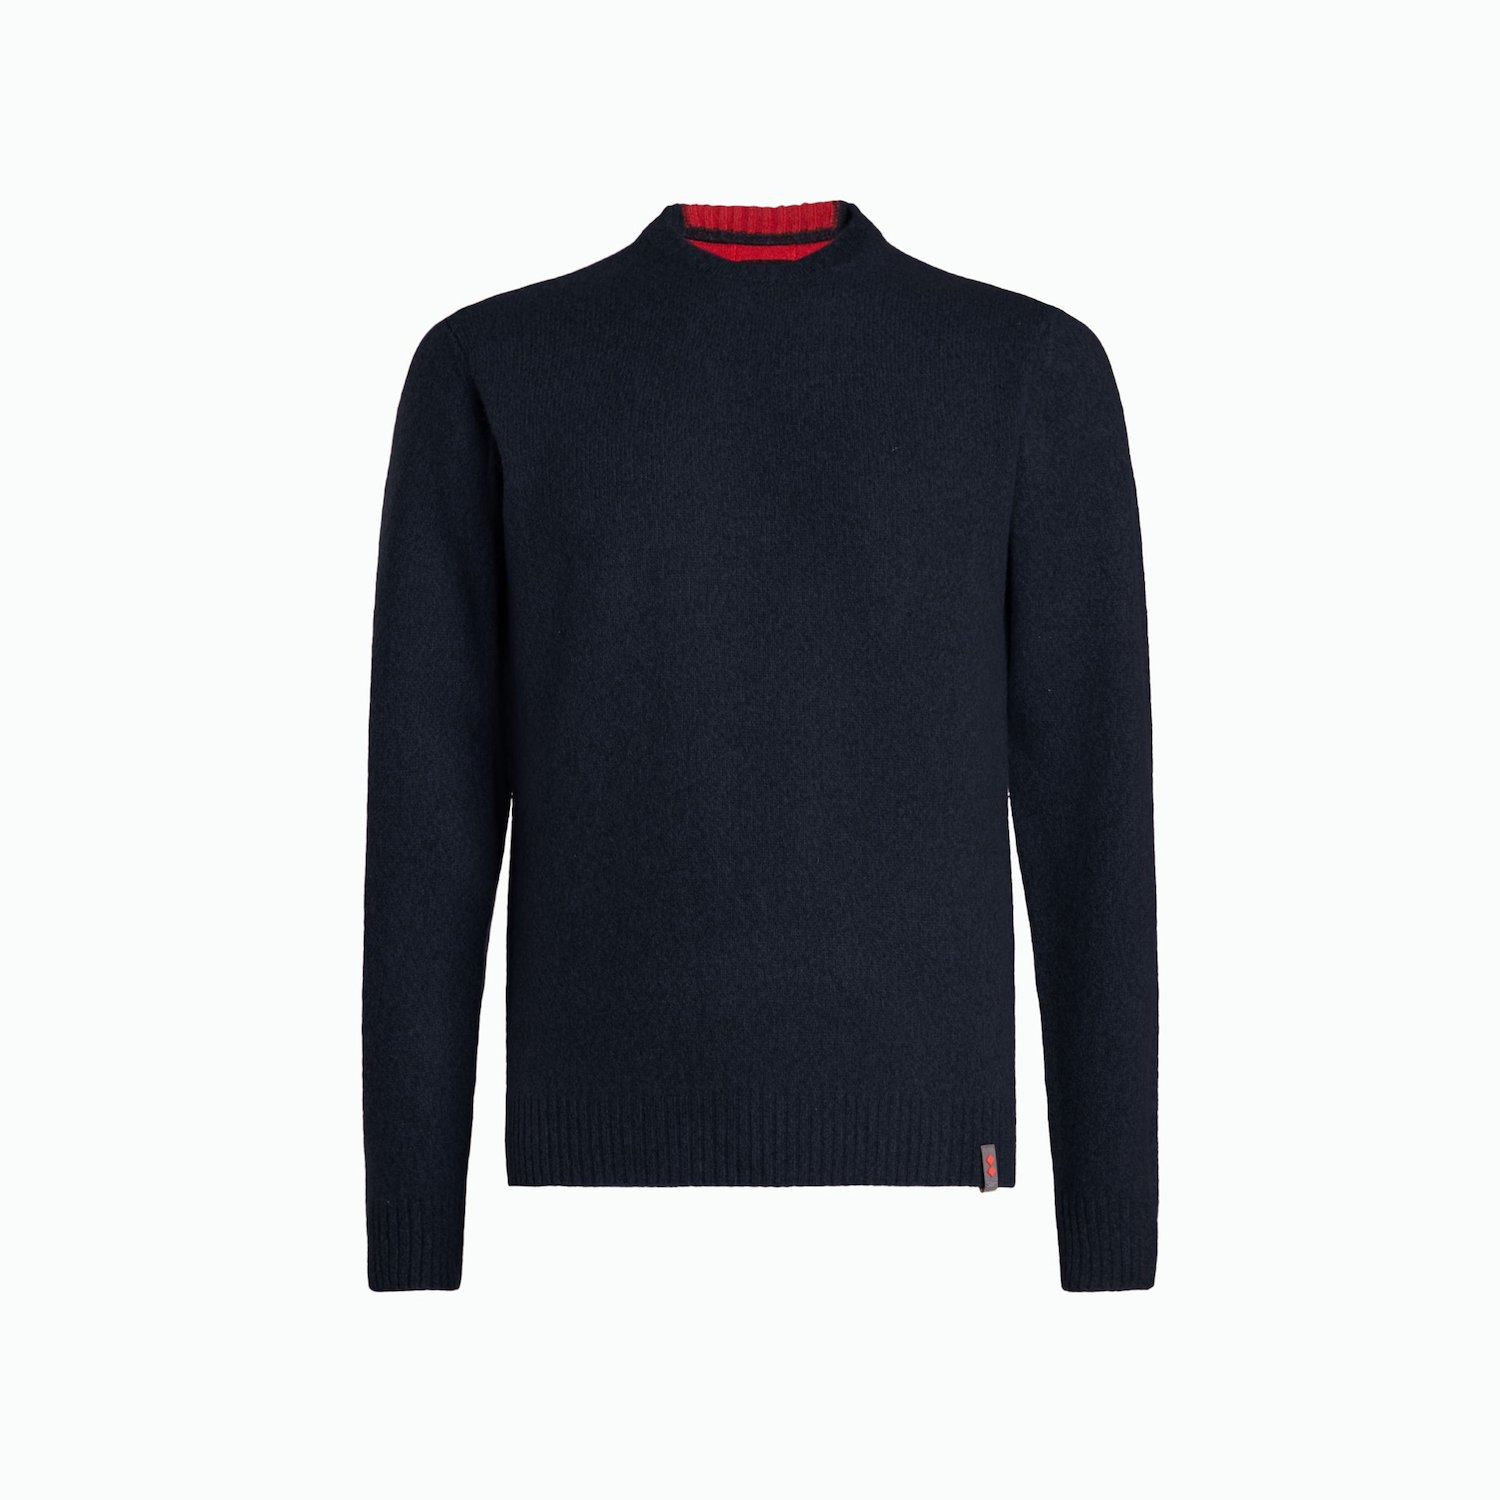 B147 sweater - Navy